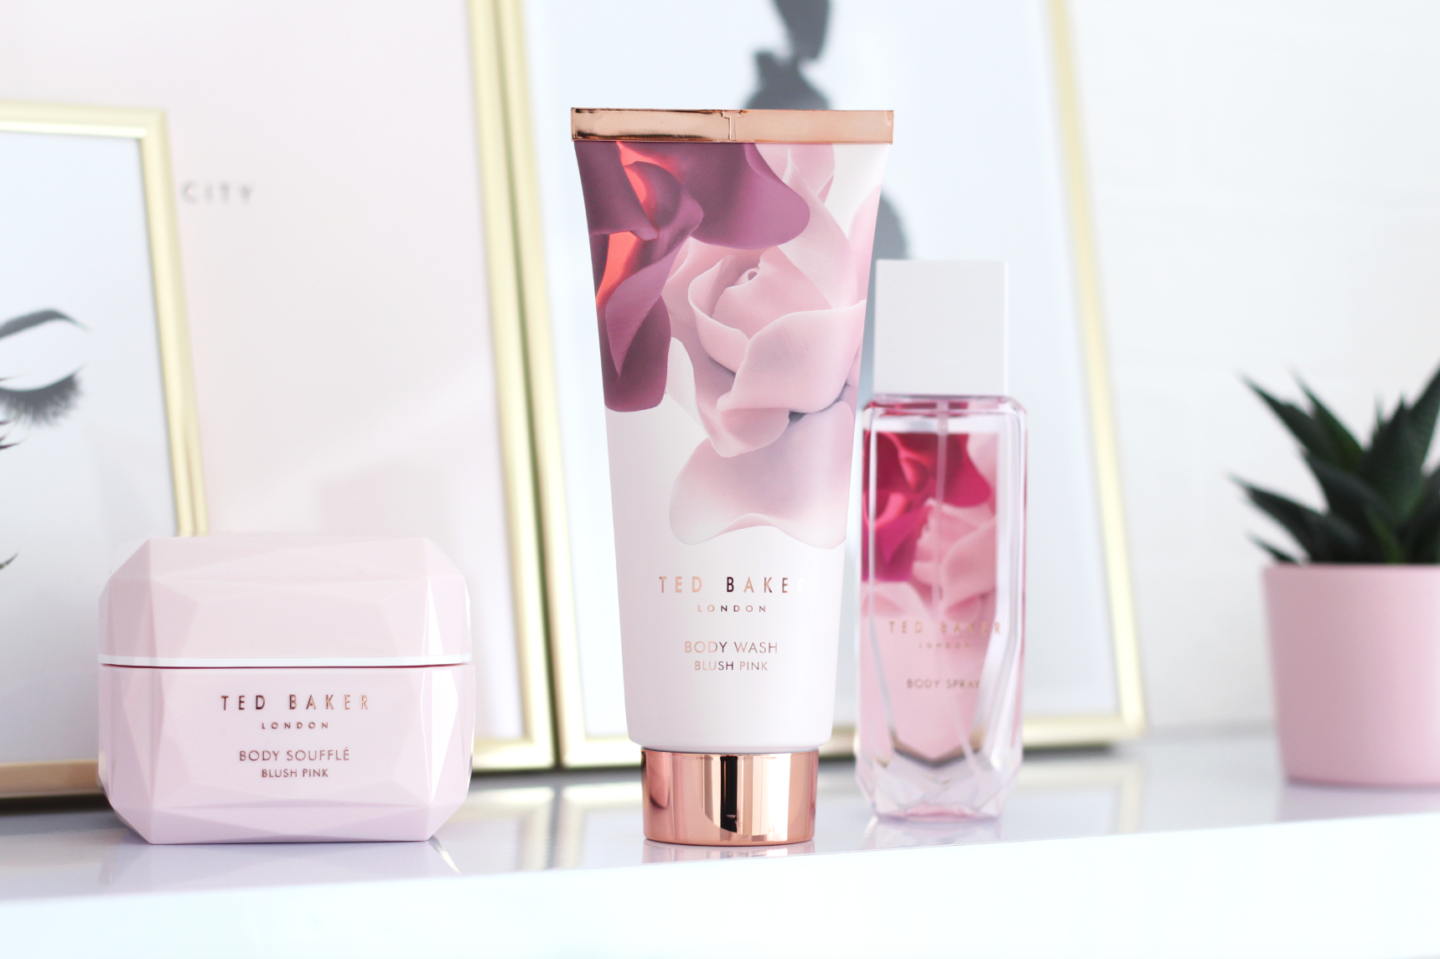 INDULGING IN THE TUB WITH TED BAKER